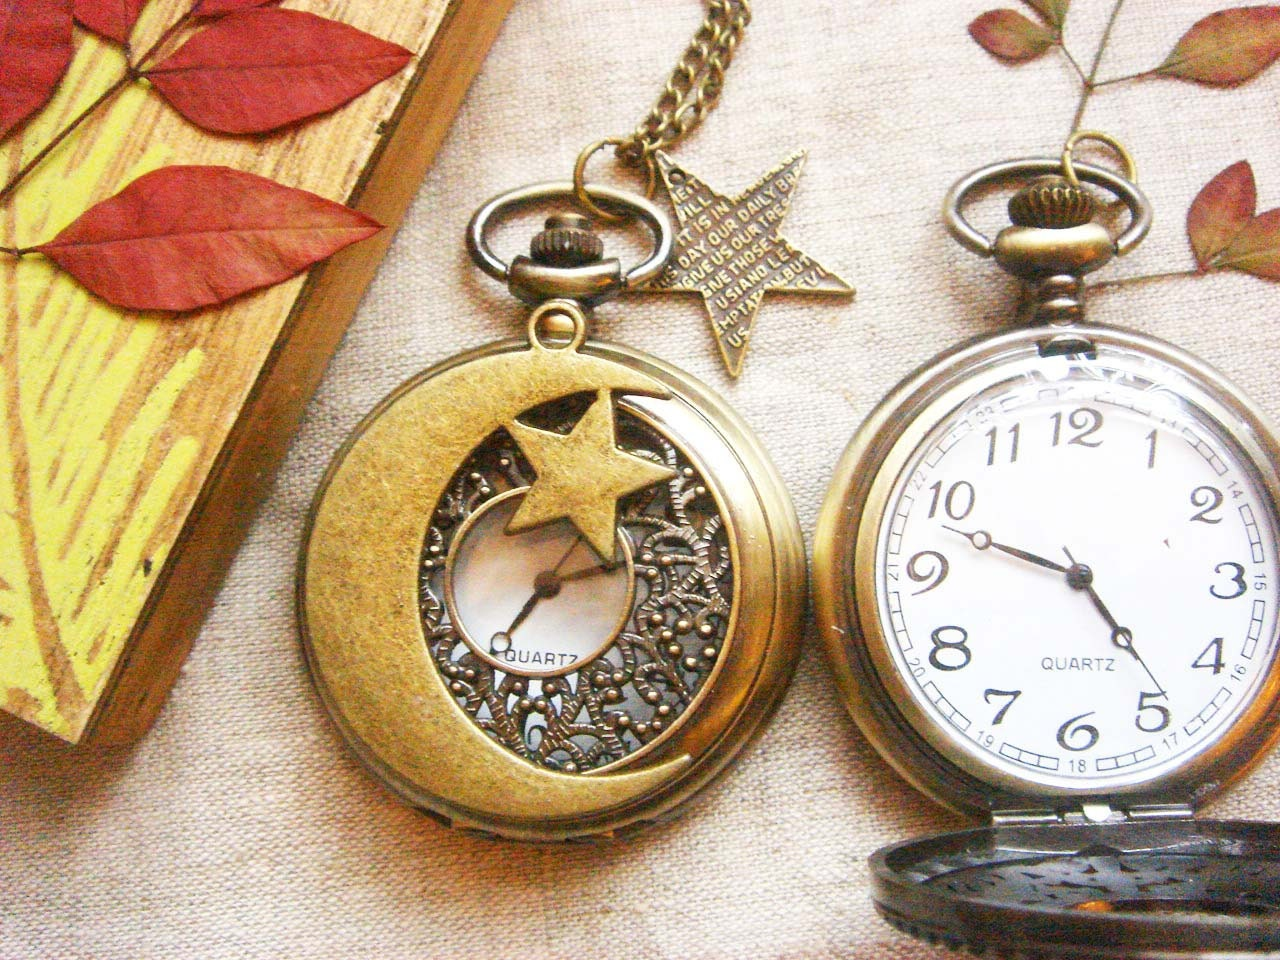 Antique Moon and Star charm Pocket Watch Necklace